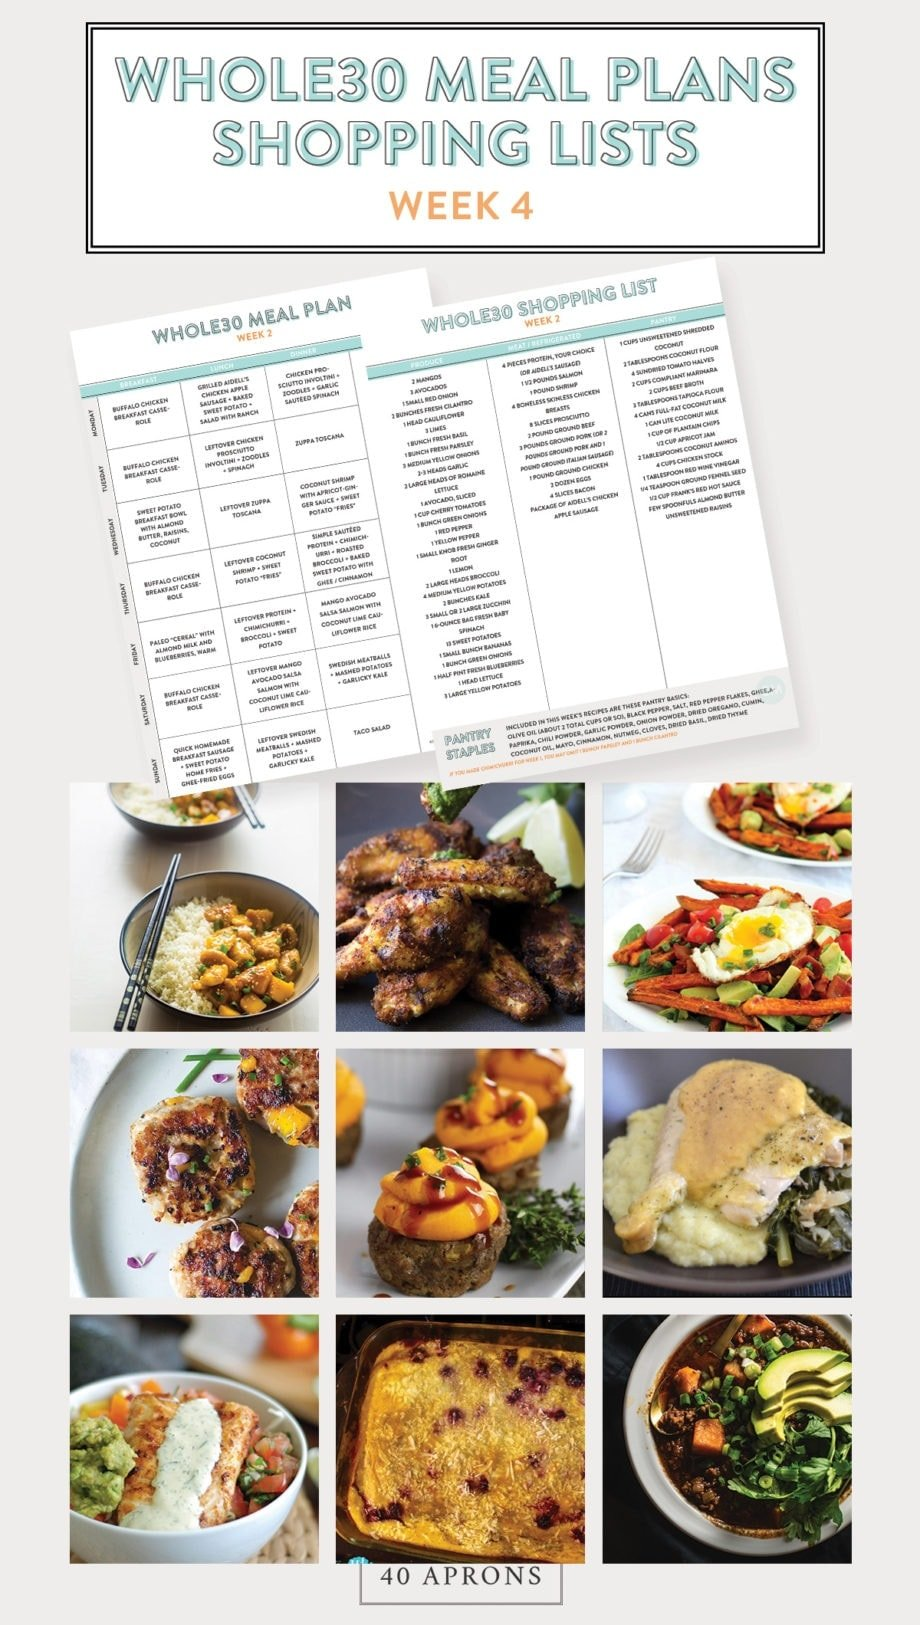 Whole30 Meal Plans and Shopping List (Printable): Week 4